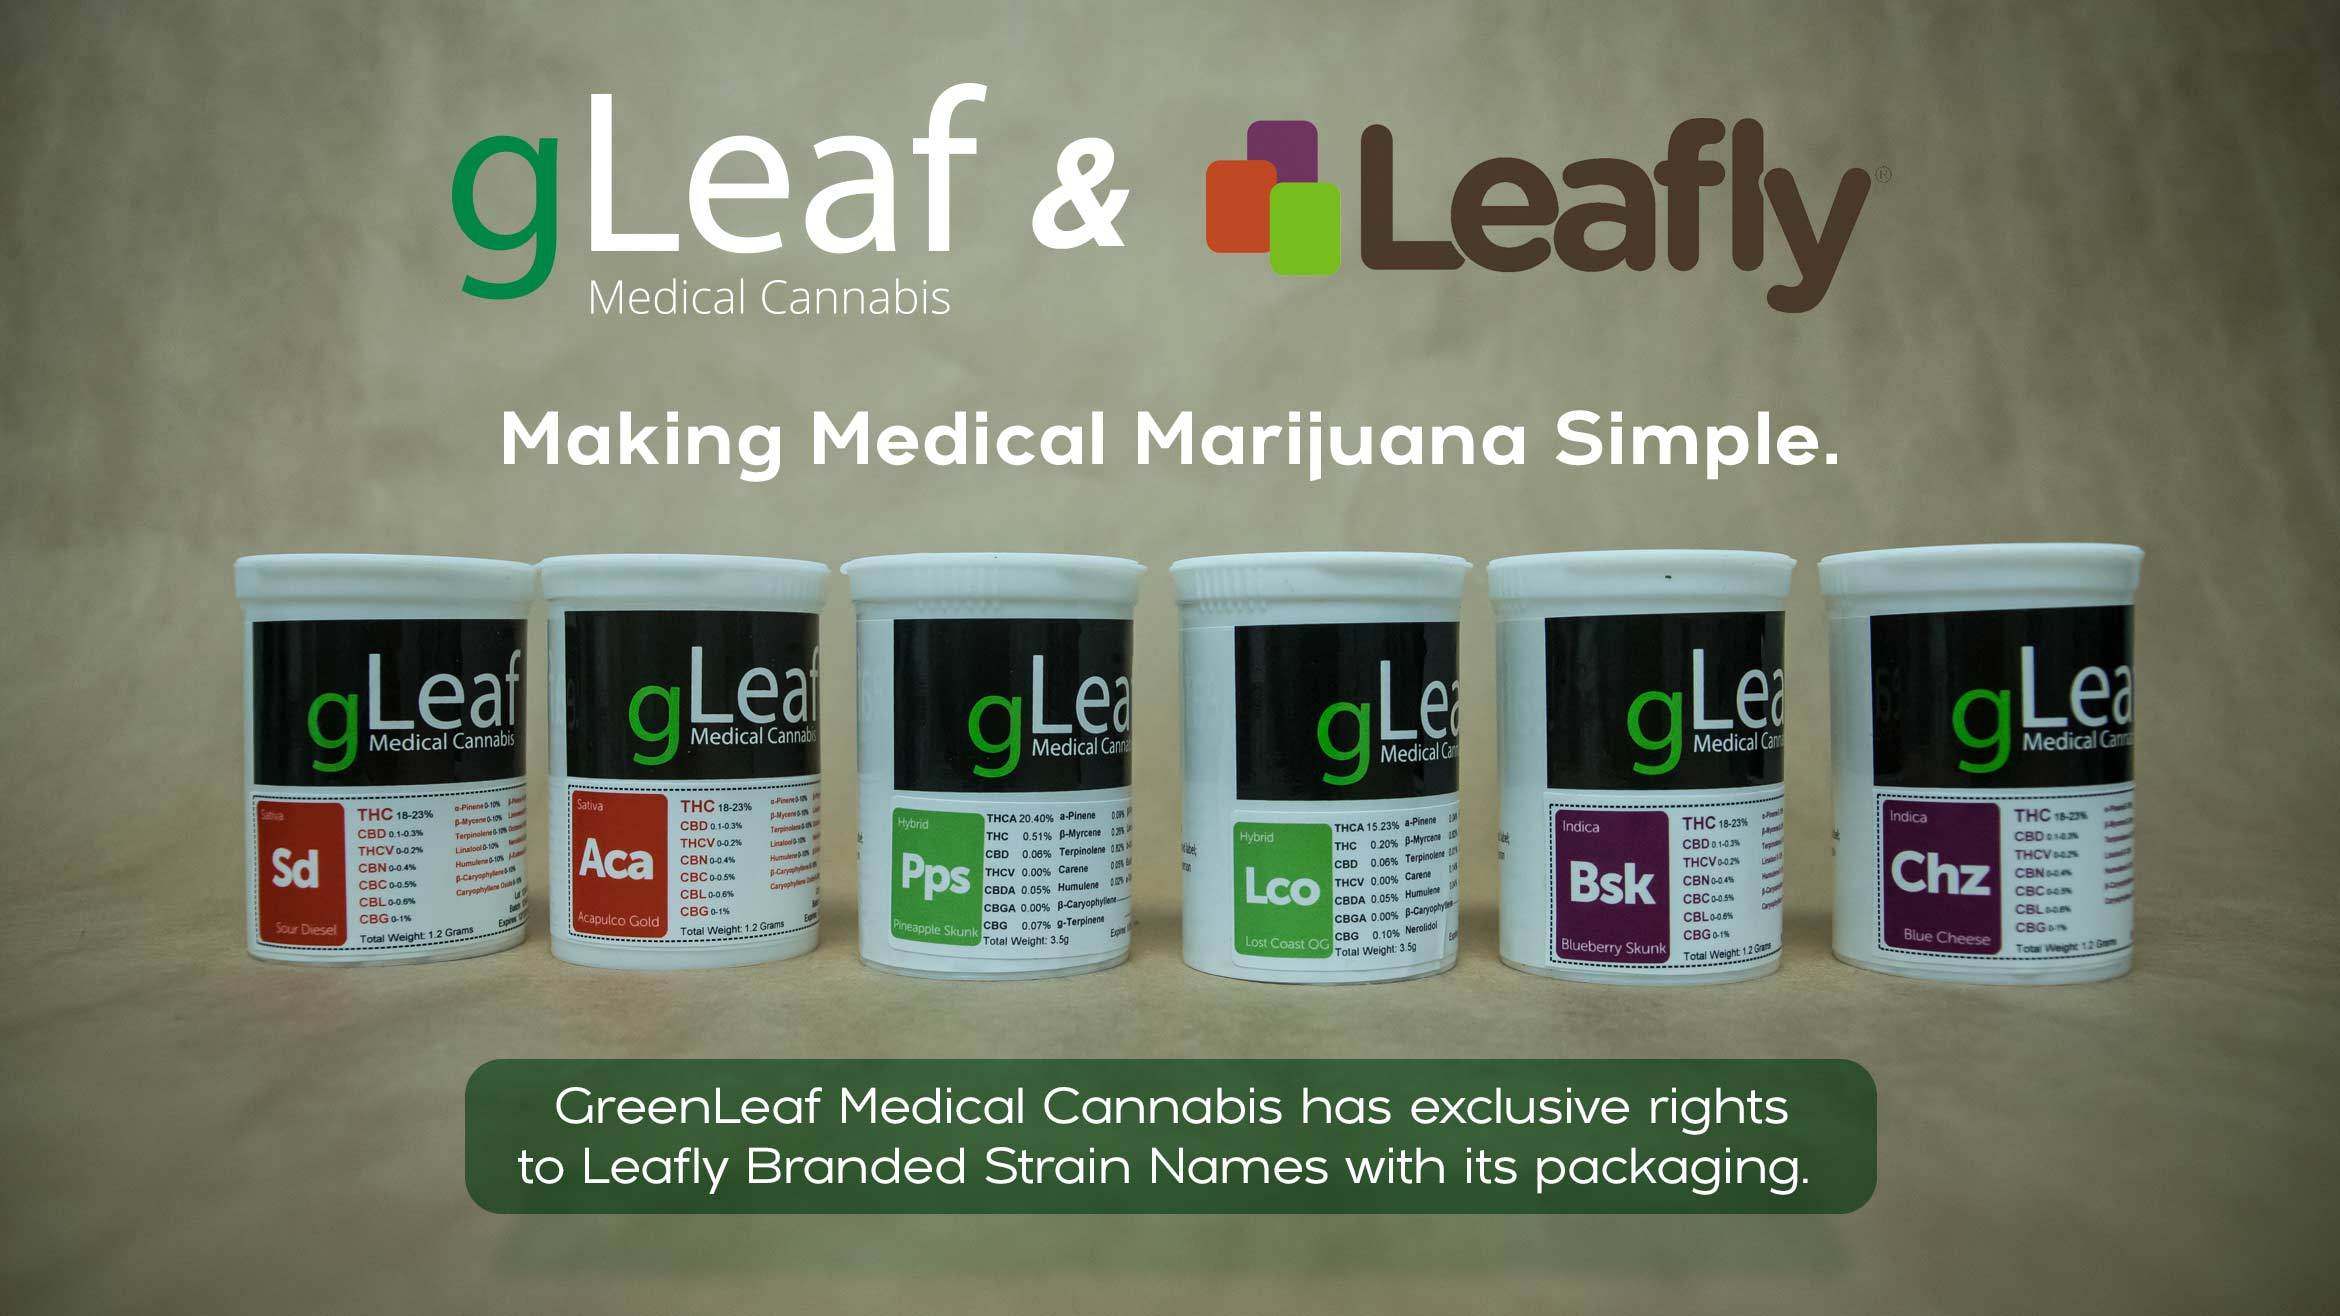 gLeaf and Leafly Partnership